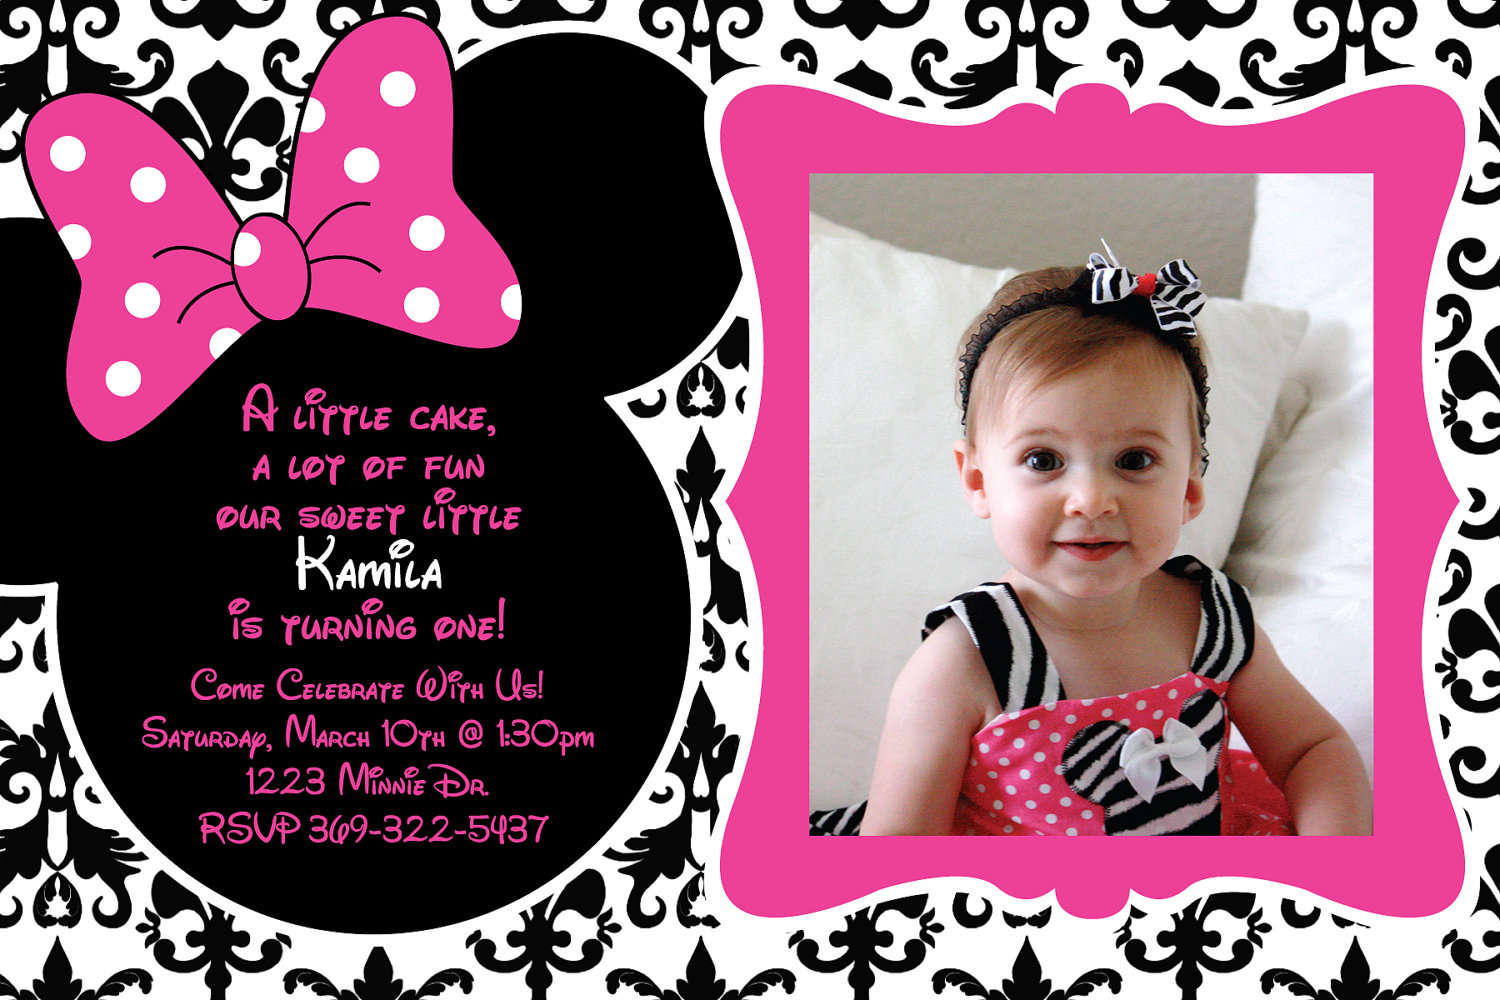 invitation card design for 1st birthday party ; 257172511dd79c654f9c114a804a09d5